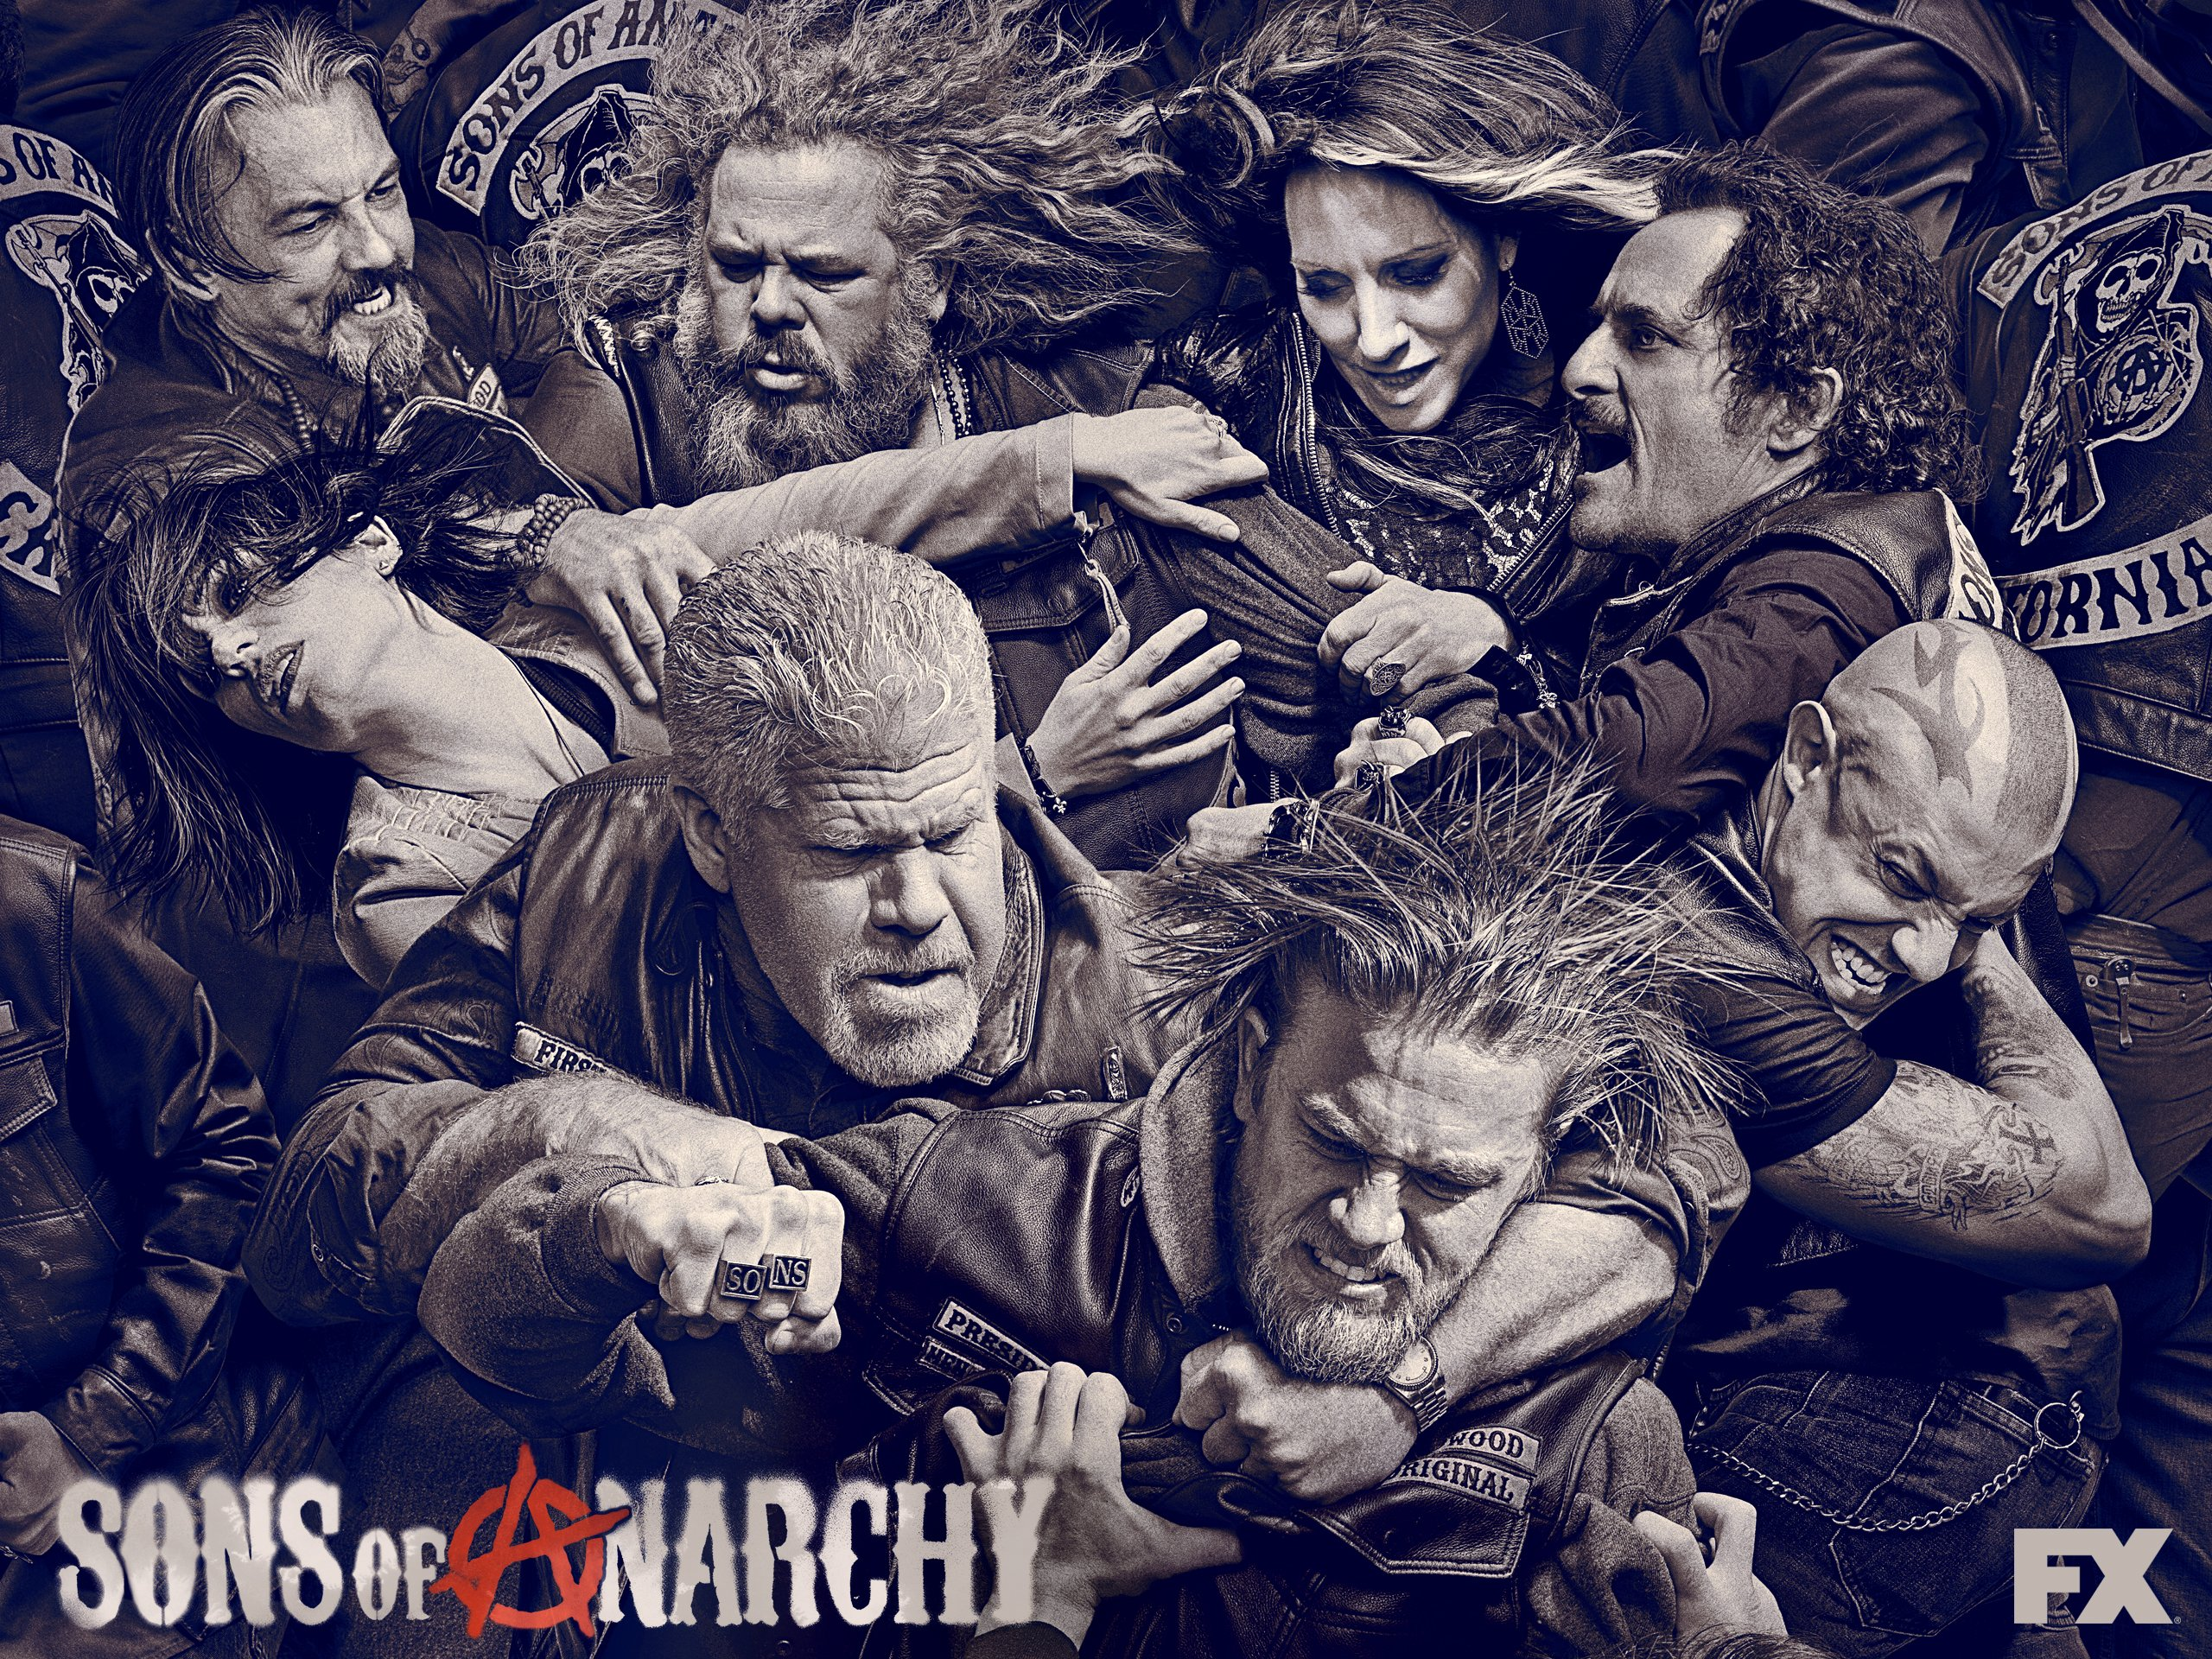 Sons of anarchy ceket